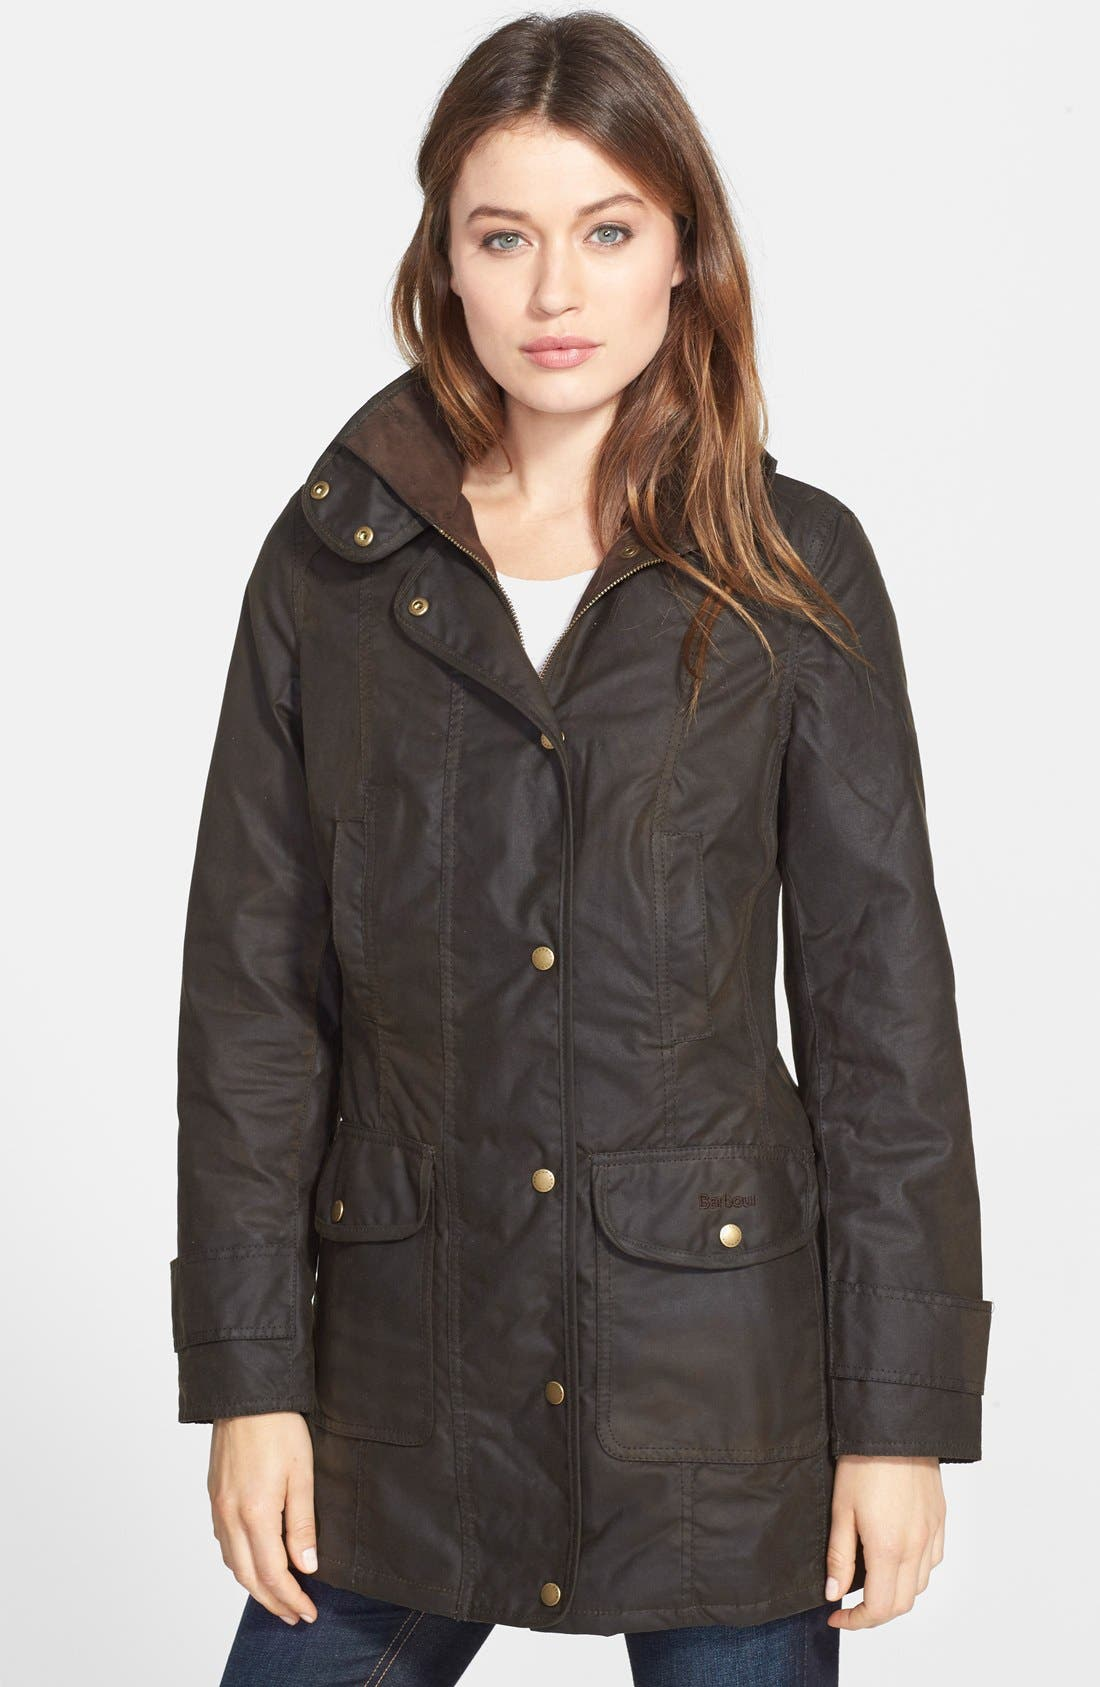 Alternate Image 1 Selected - Barbour 'Squire' Waterproof Waxed Cotton Jacket